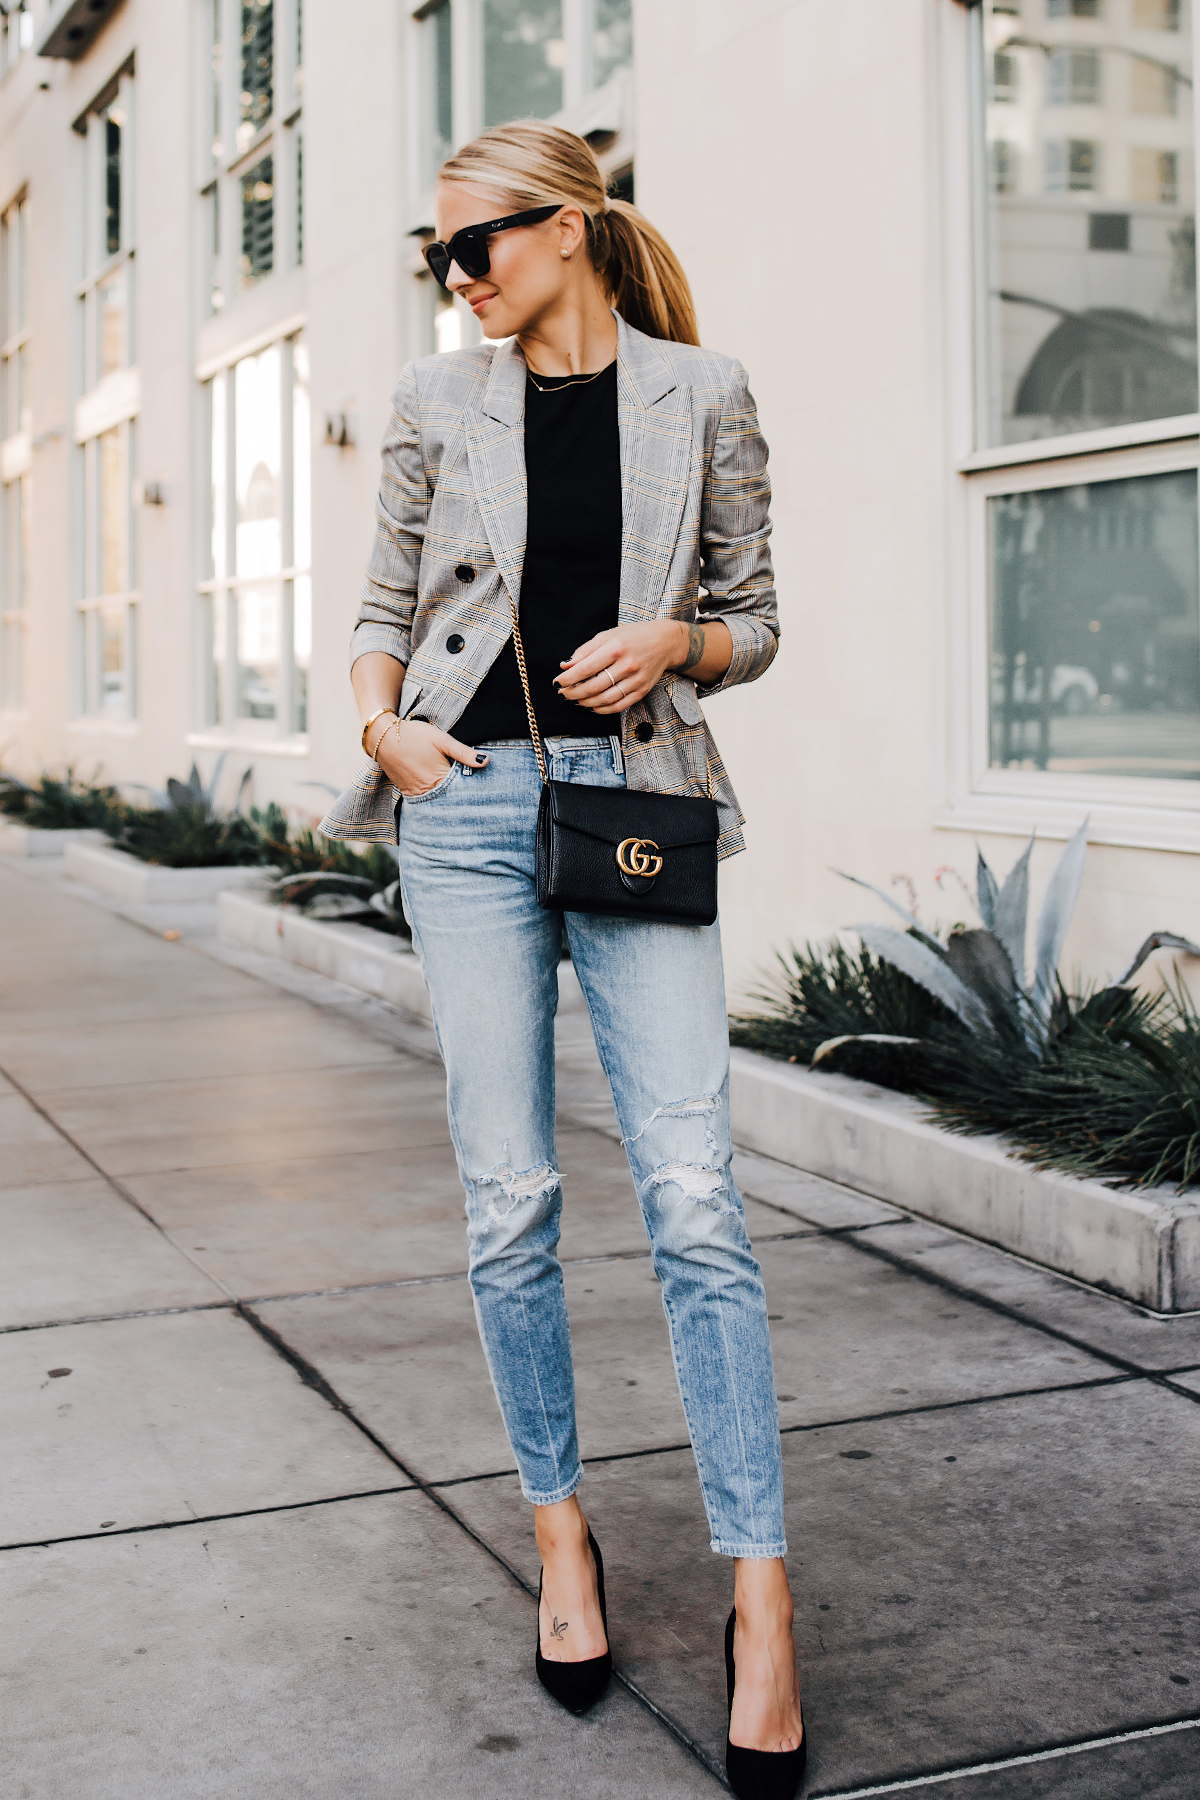 Blonde Woman Wearing Plaid Blazer Mother Ripped Denim Jeans Black Pumps Gucci Black Handbag Fashion Jackson San Diego Fashion Blogger Street Style